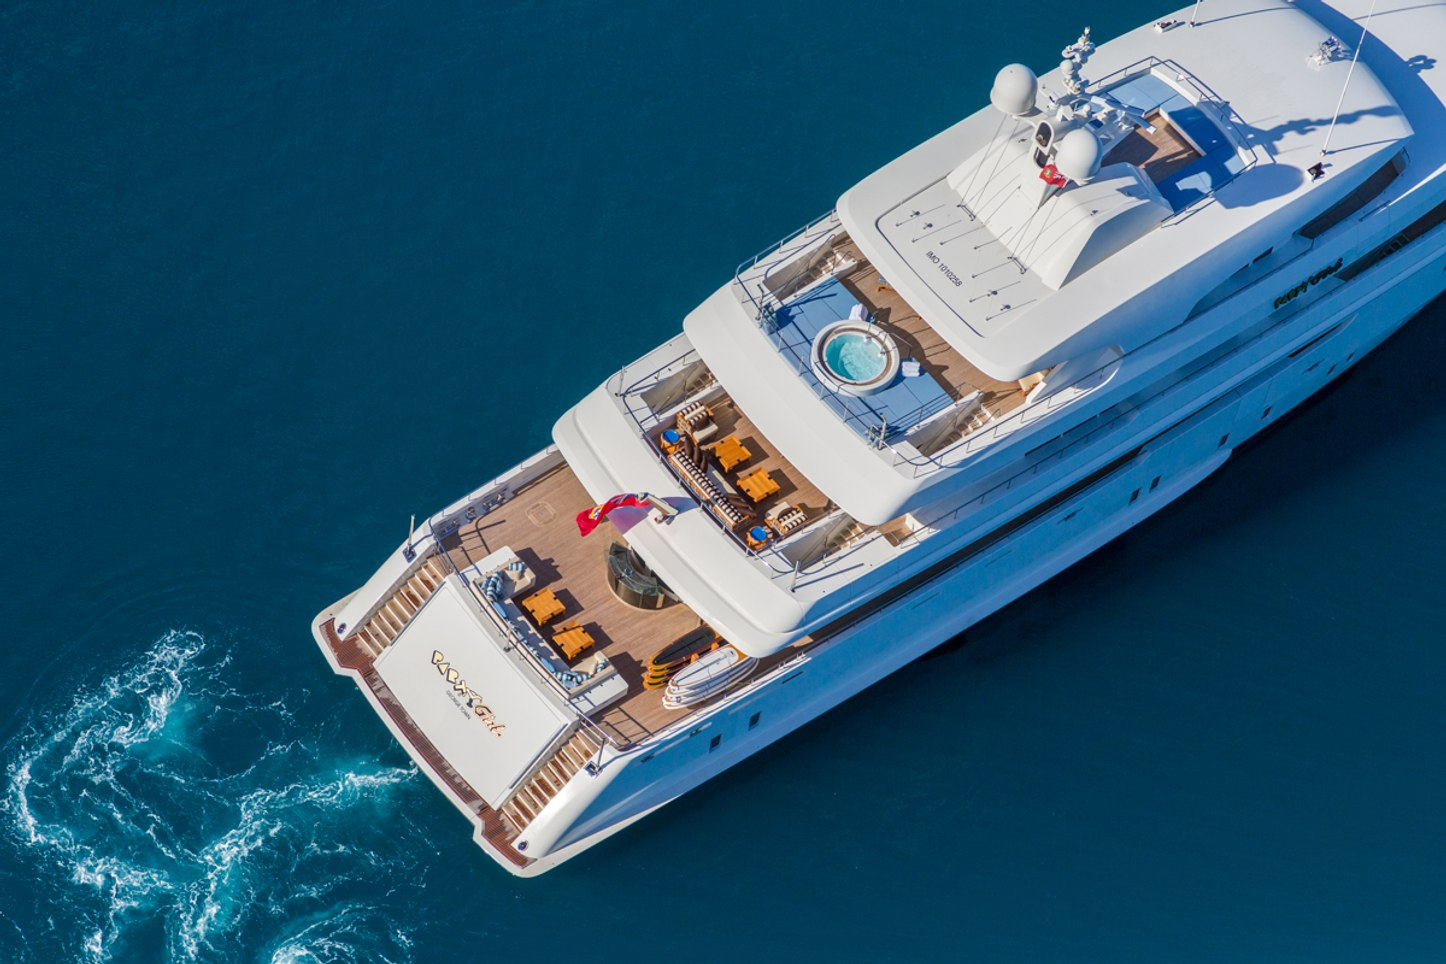 aerial view of luxury yacht Party Girl